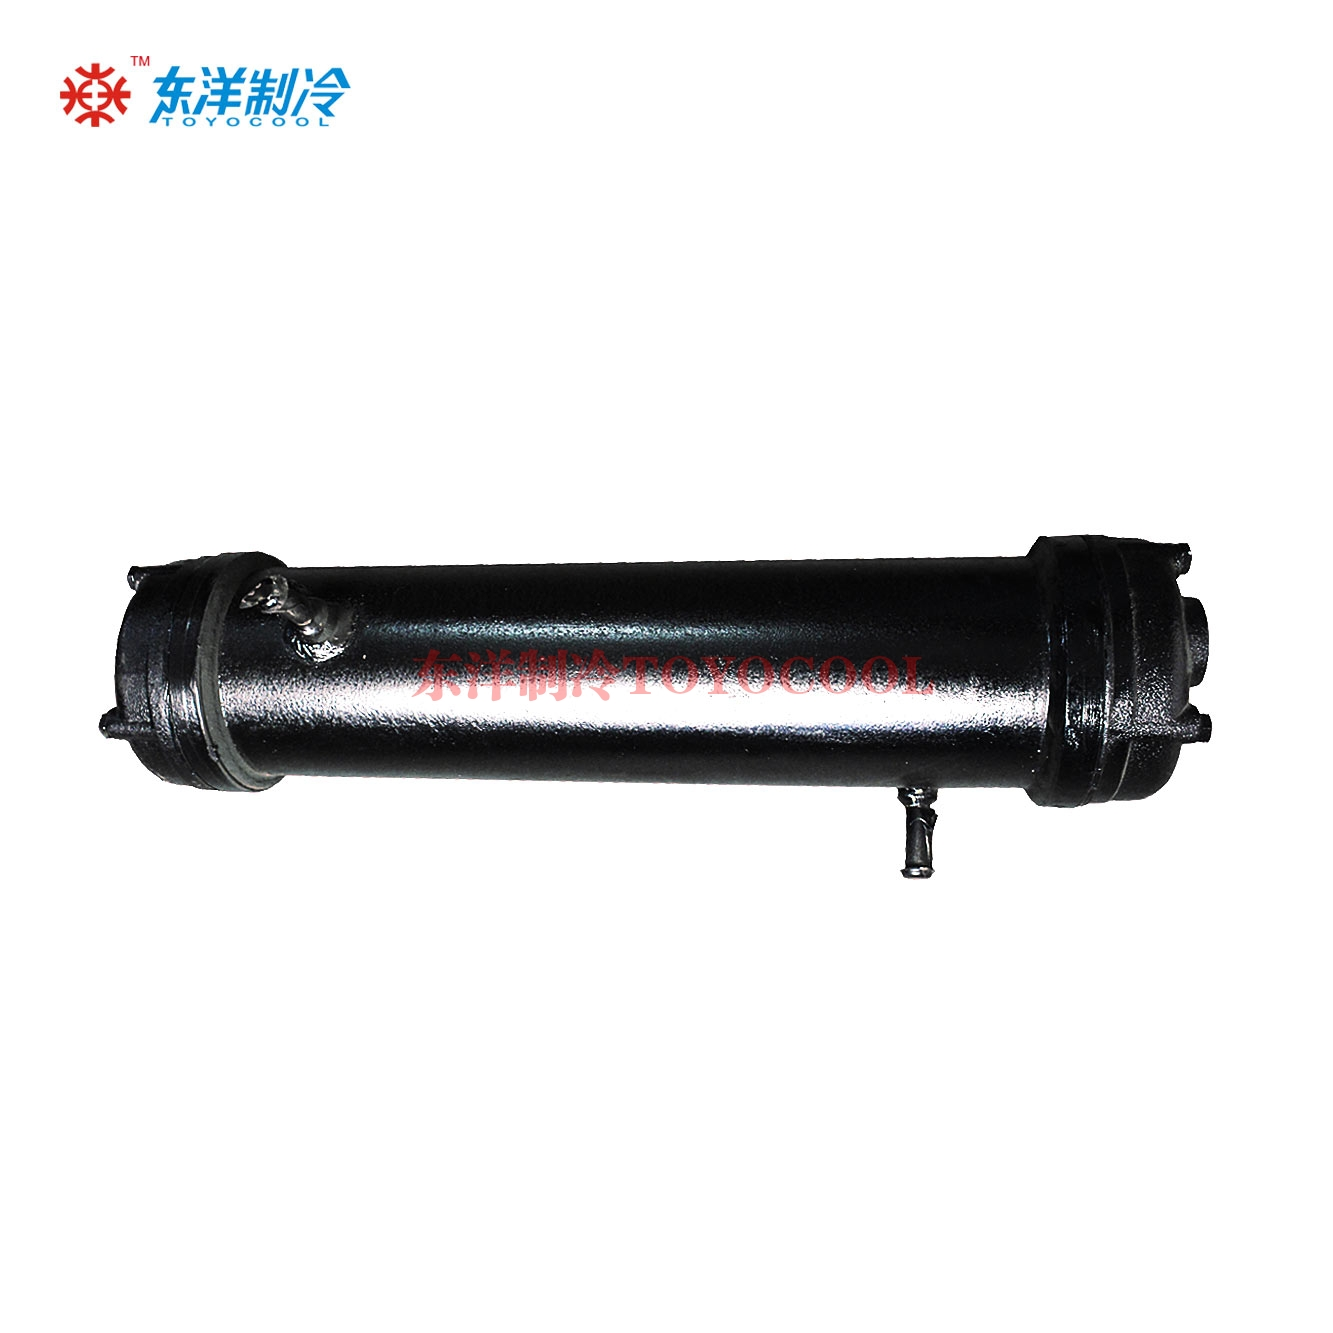 http://www.tychiller.com/data/images/product/20180703154850_104.jpg